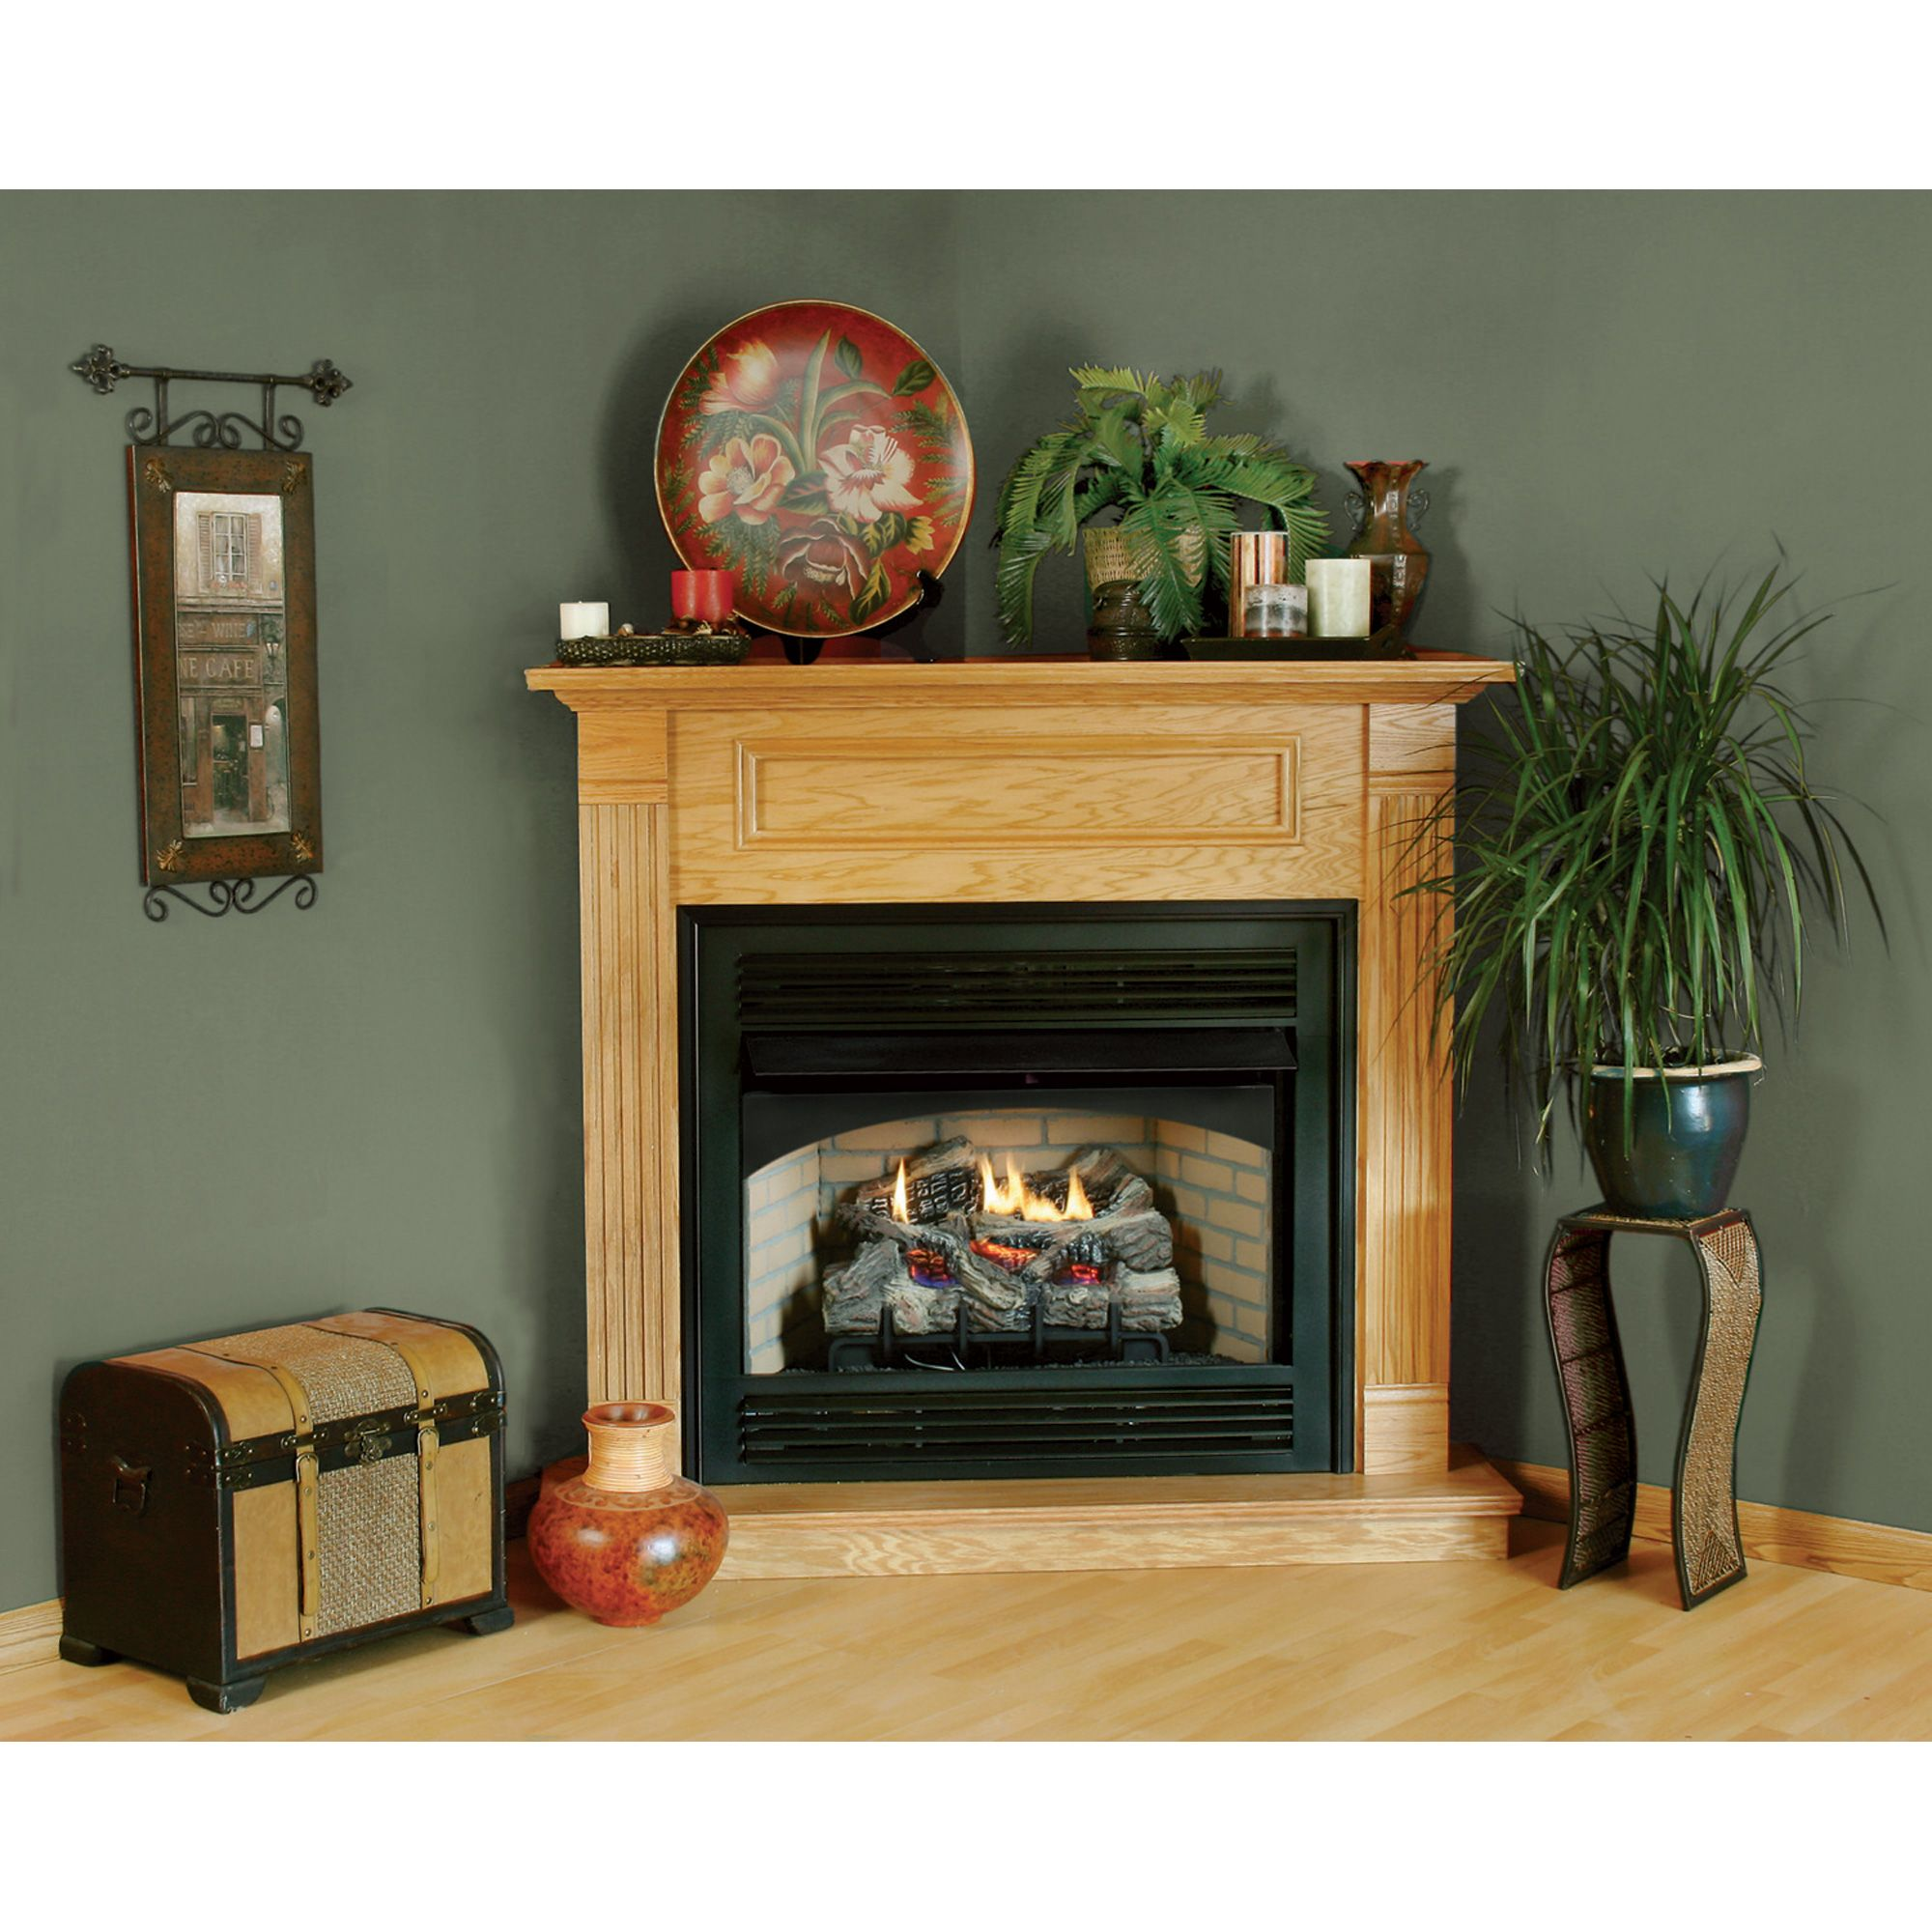 How To Decorate Fireplace Wall How To Decorate A Corner Fireplace Mantel Google Search